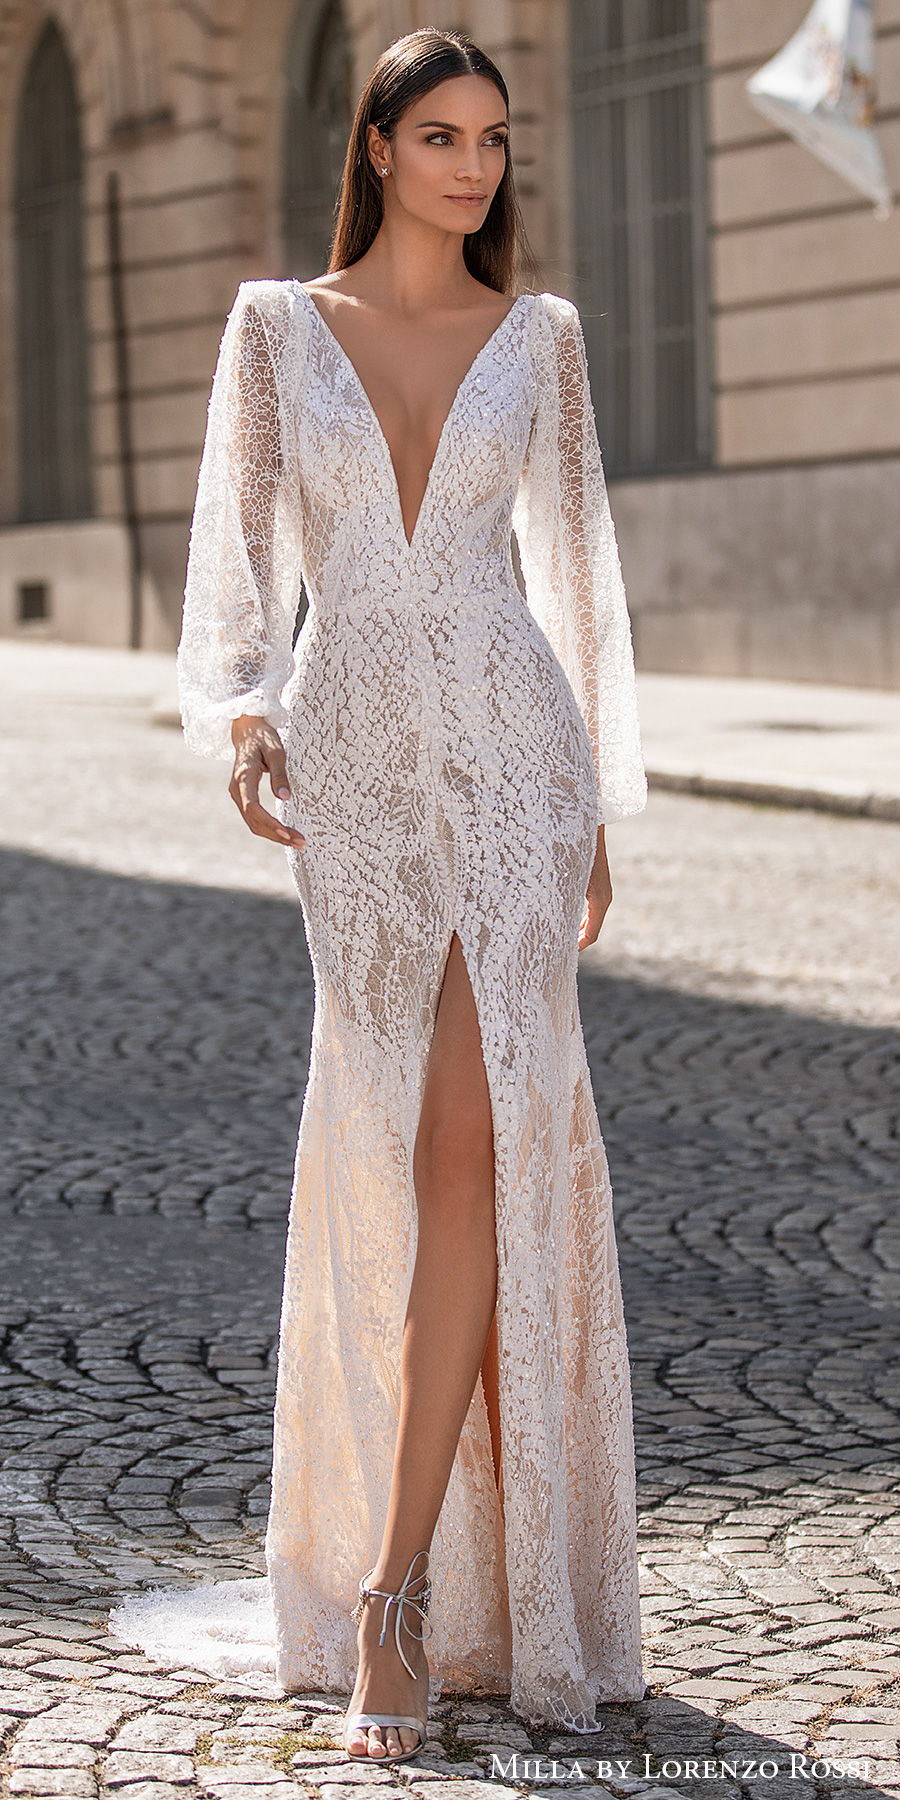 milla lorenzo rossi 2021 bridal long bishop sleeves deep plunging v neck full embellisment slit skirt sexy elegant sheath wedding dress v back short train (dominique) mv